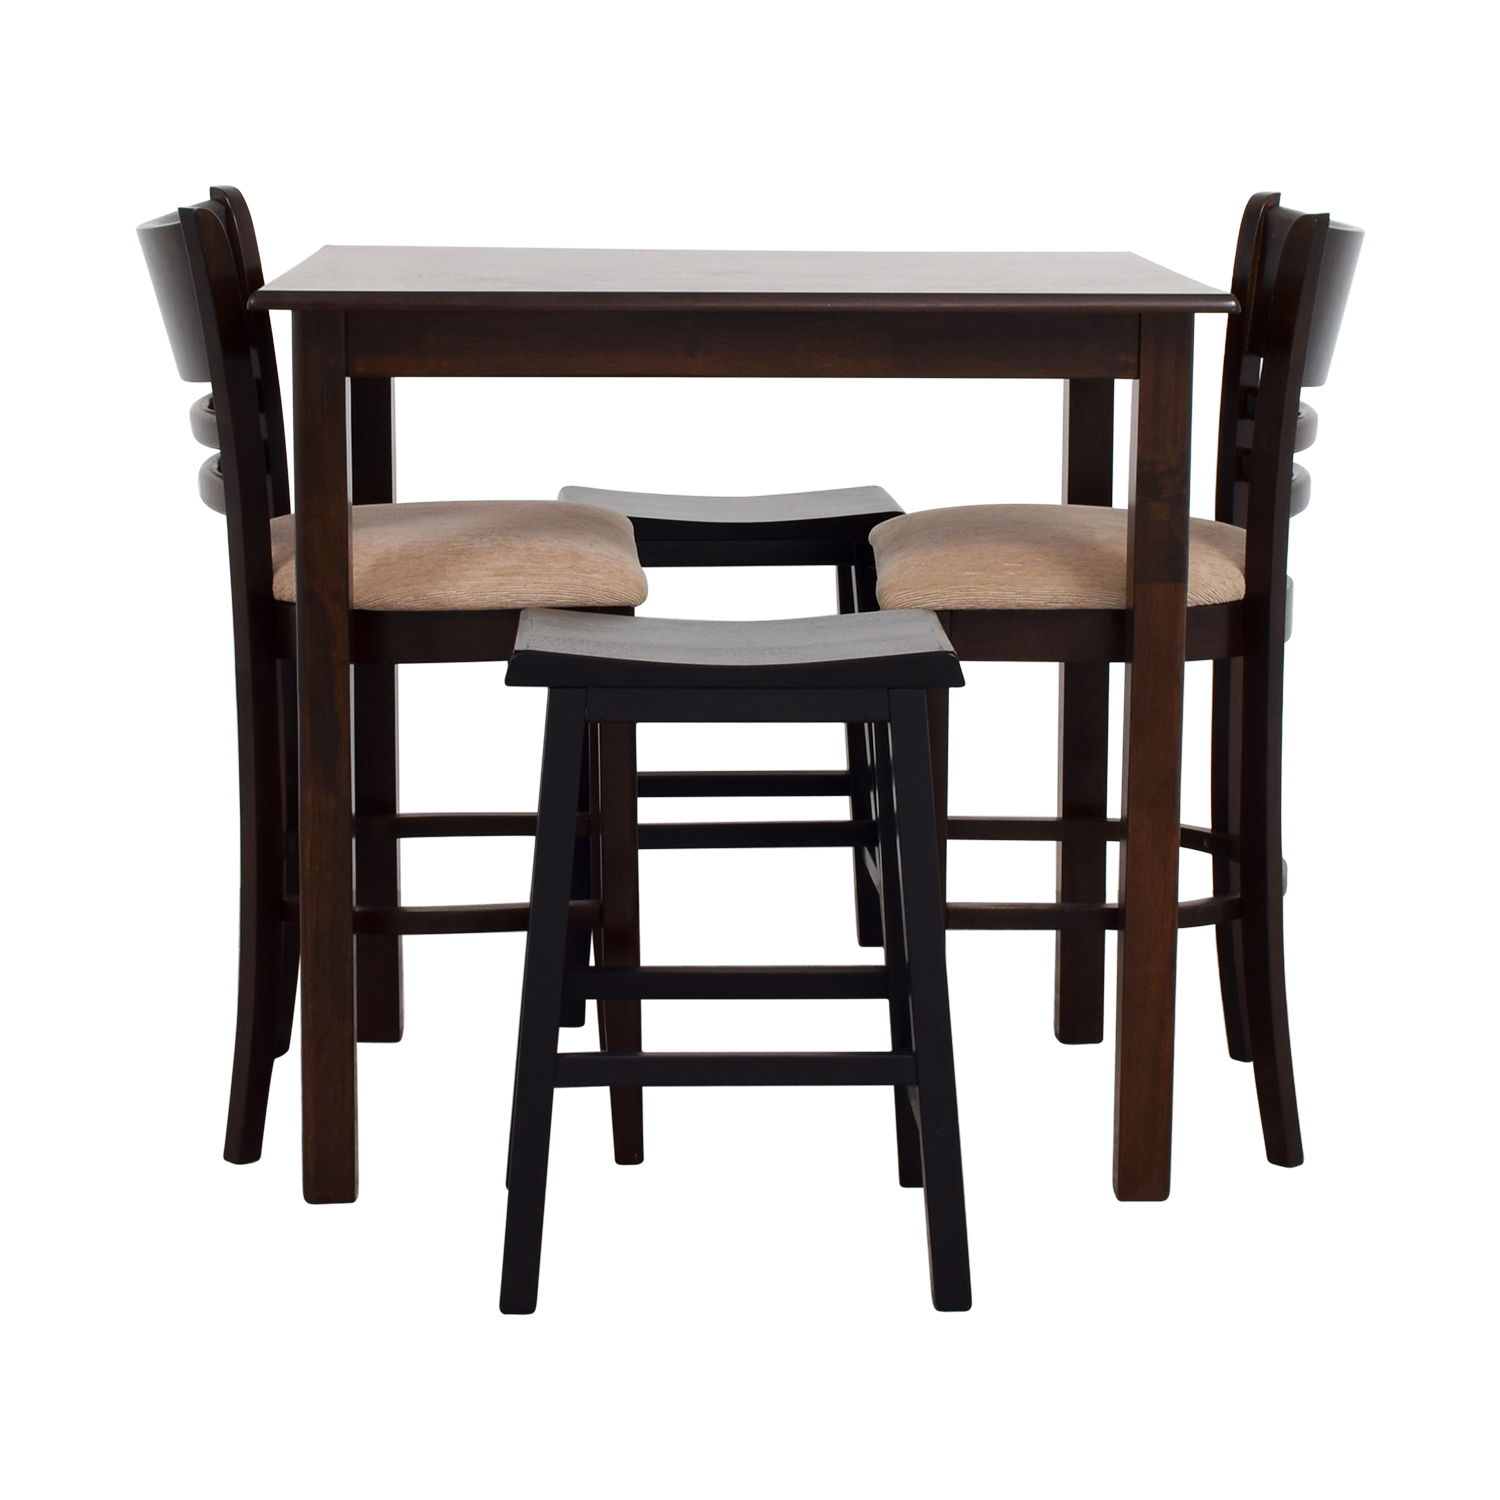 Bar Table With Chairs 70 Off Simple Bar Table With Two Chairs And Two Stools Tables